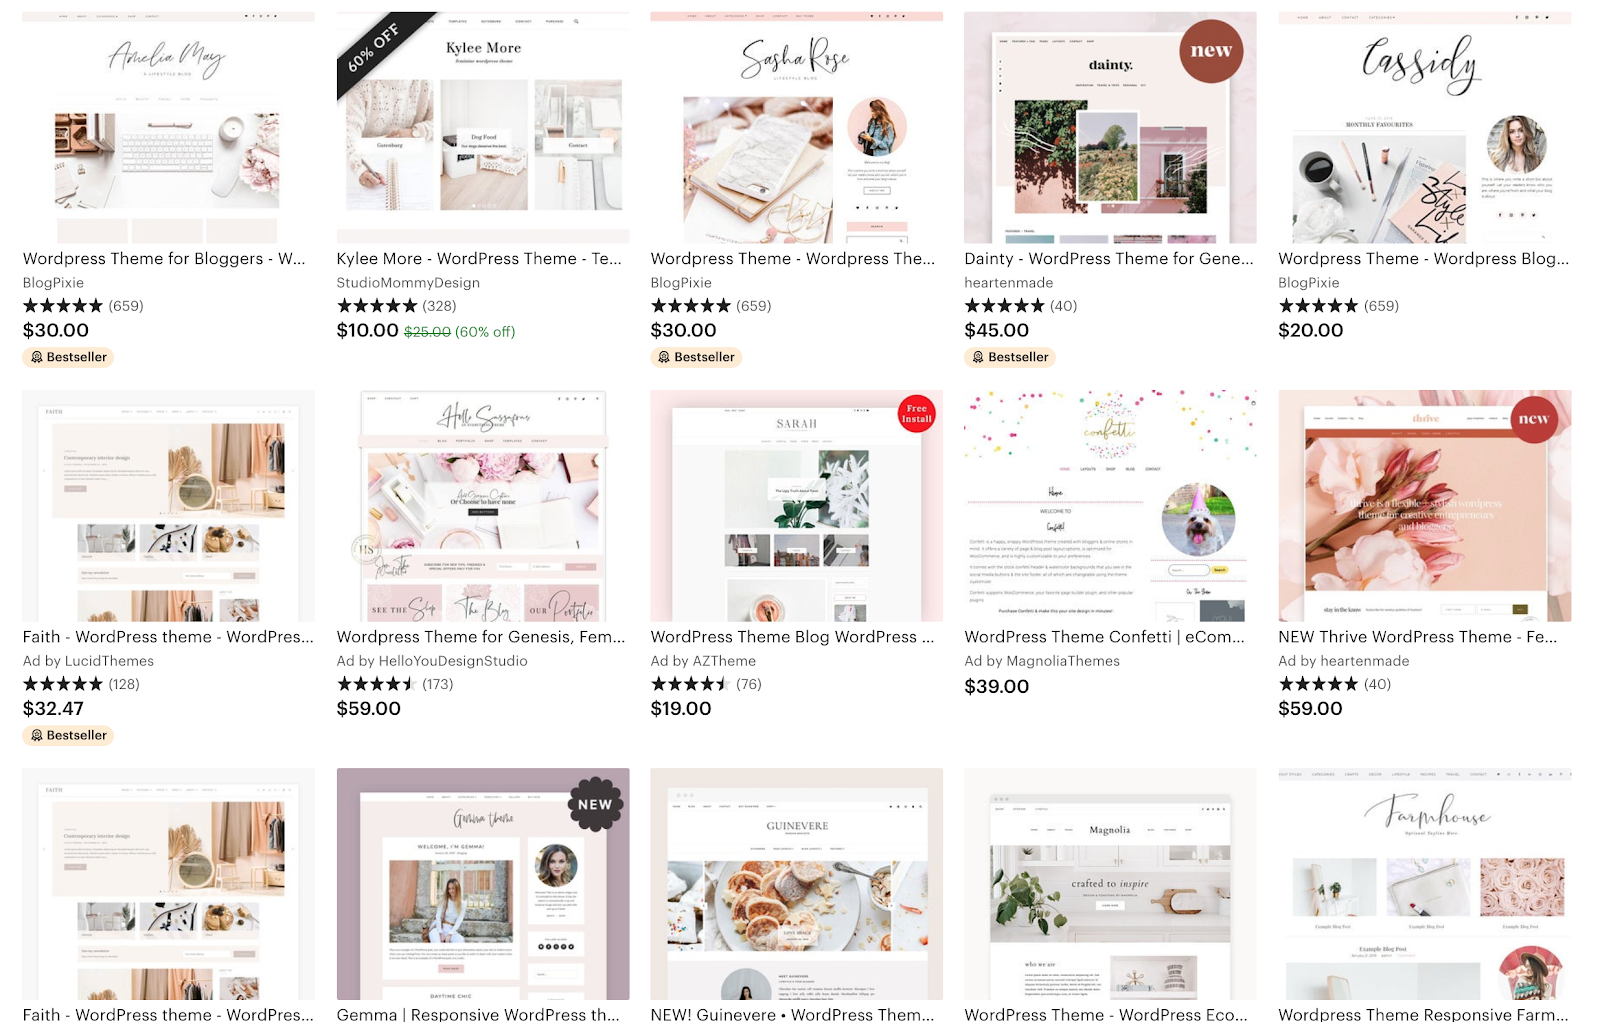 WordPress blog themes interface on Etsy